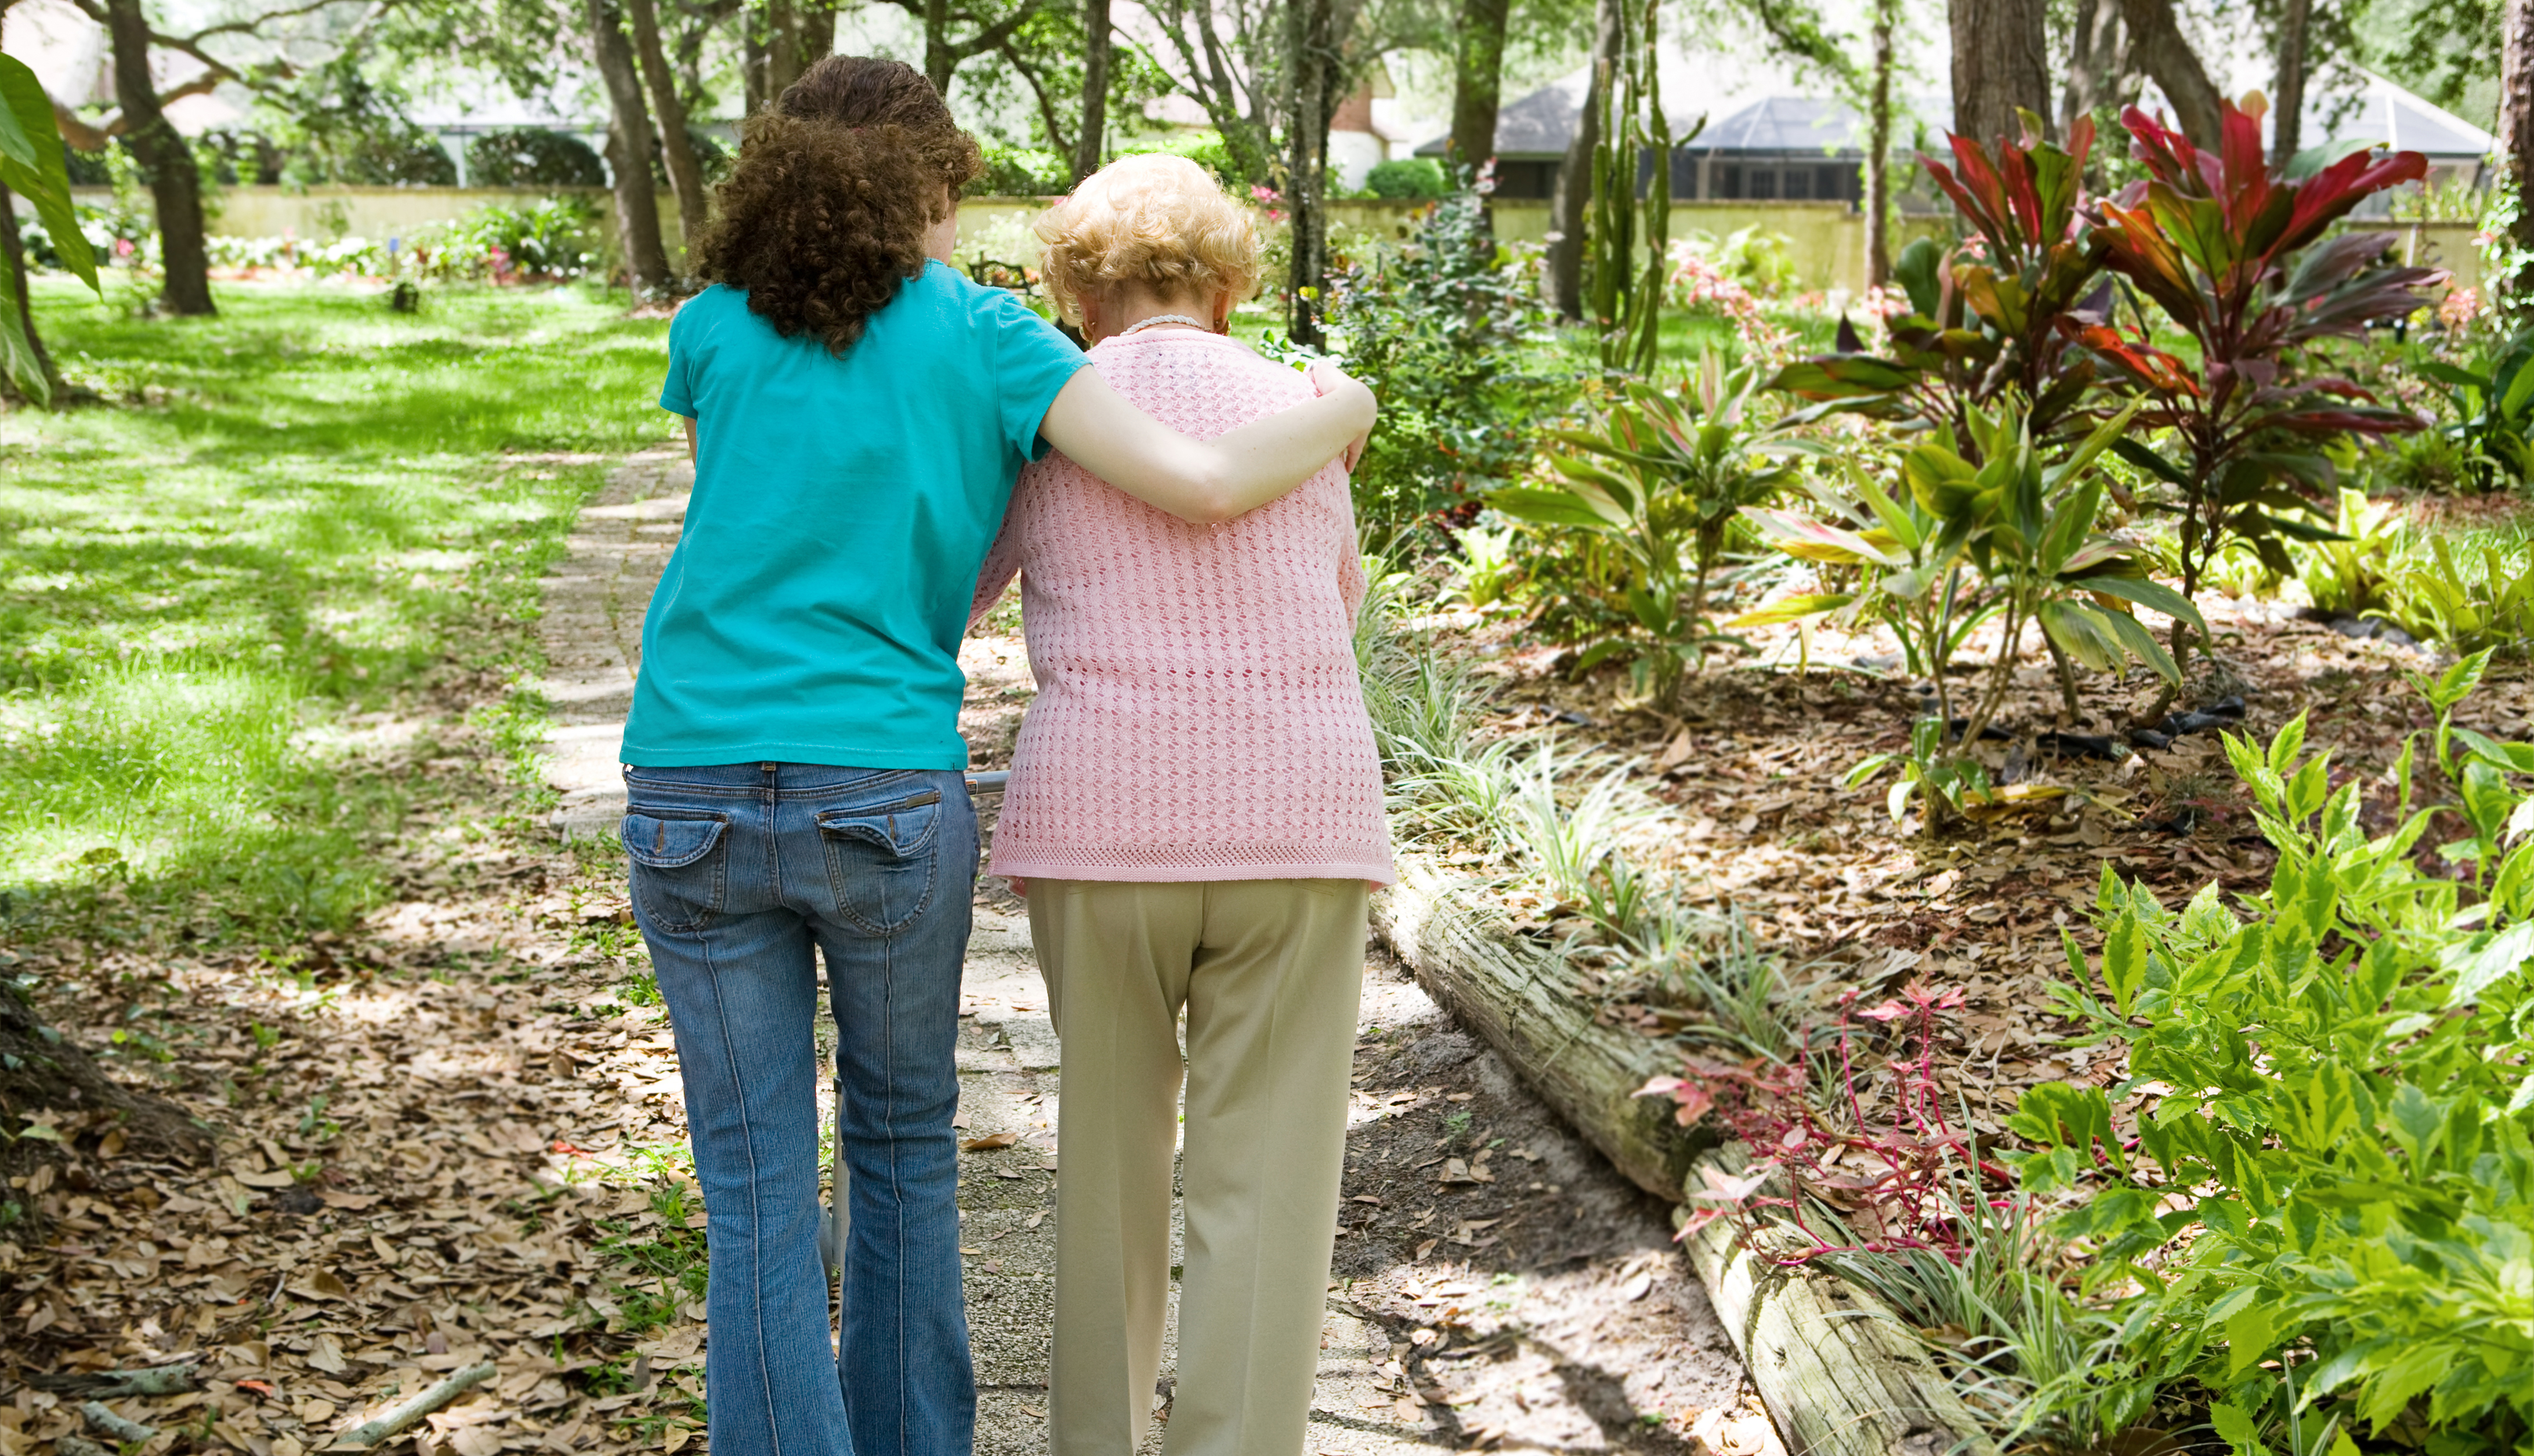 female caregiver walking on a path with an older woman, supporting her